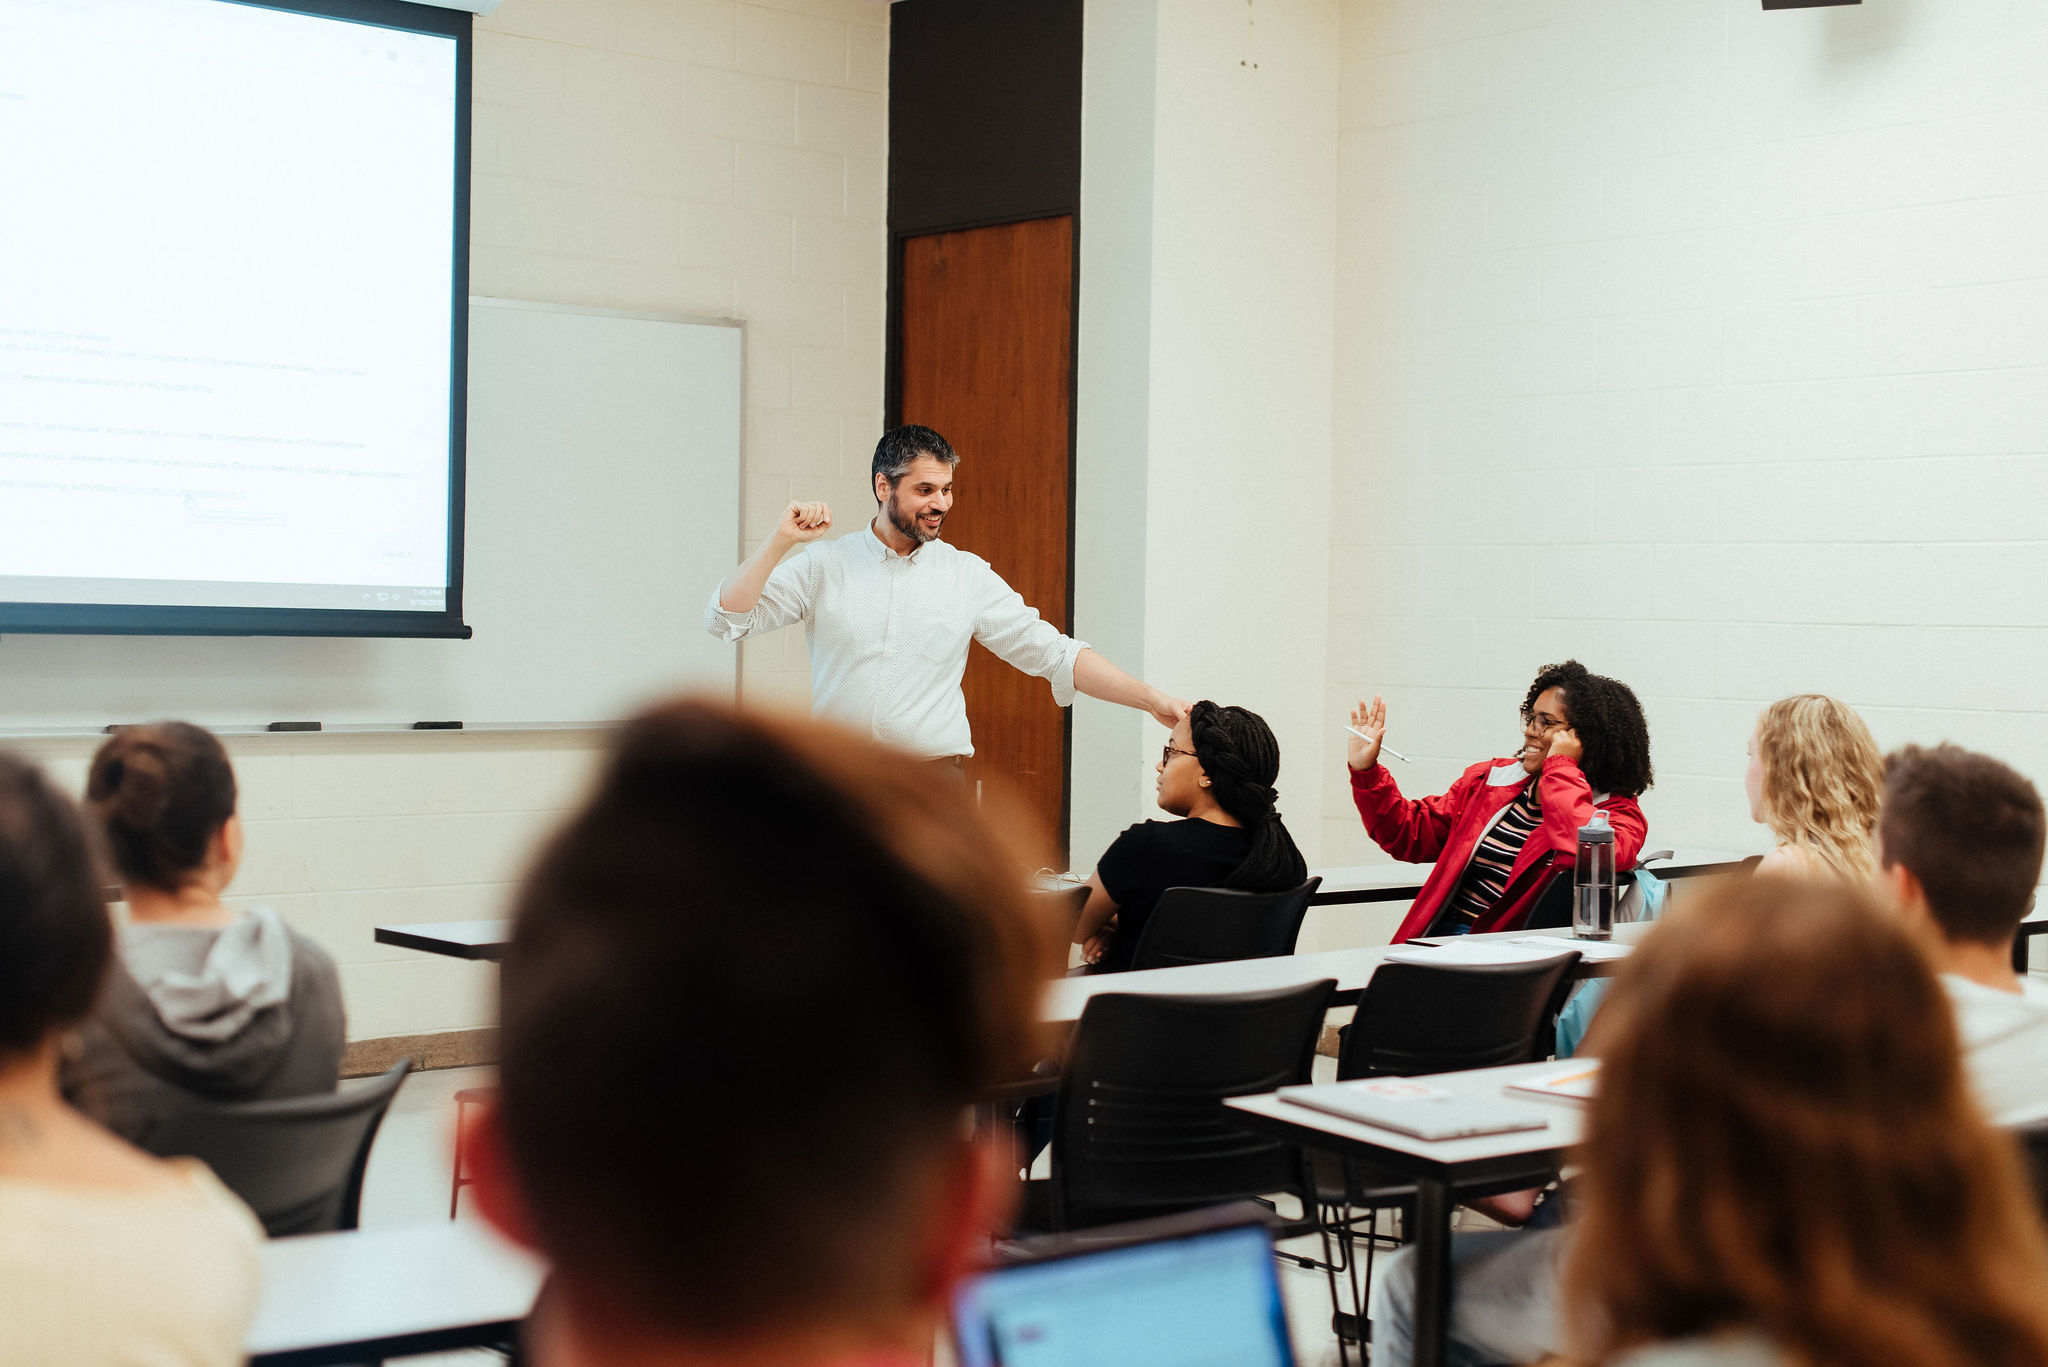 professor interacting with students at front of classroom